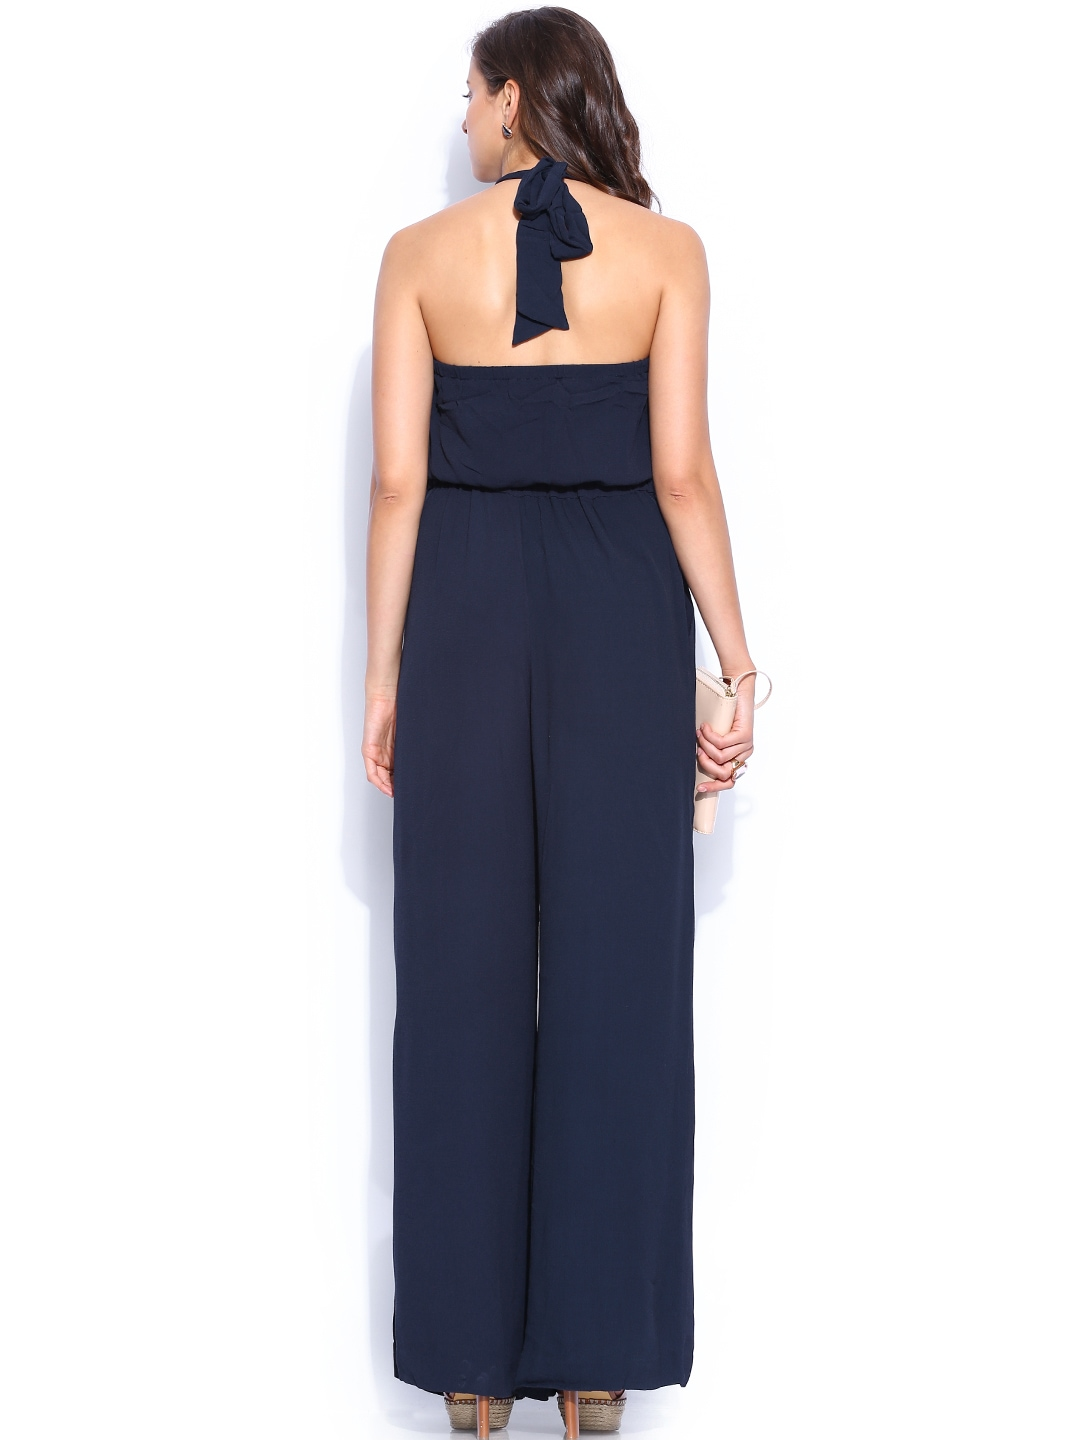 Beautiful Myntra MANGO Women Navy Jumpsuit 748395  Buy Myntra MANGO Jumpsuit At